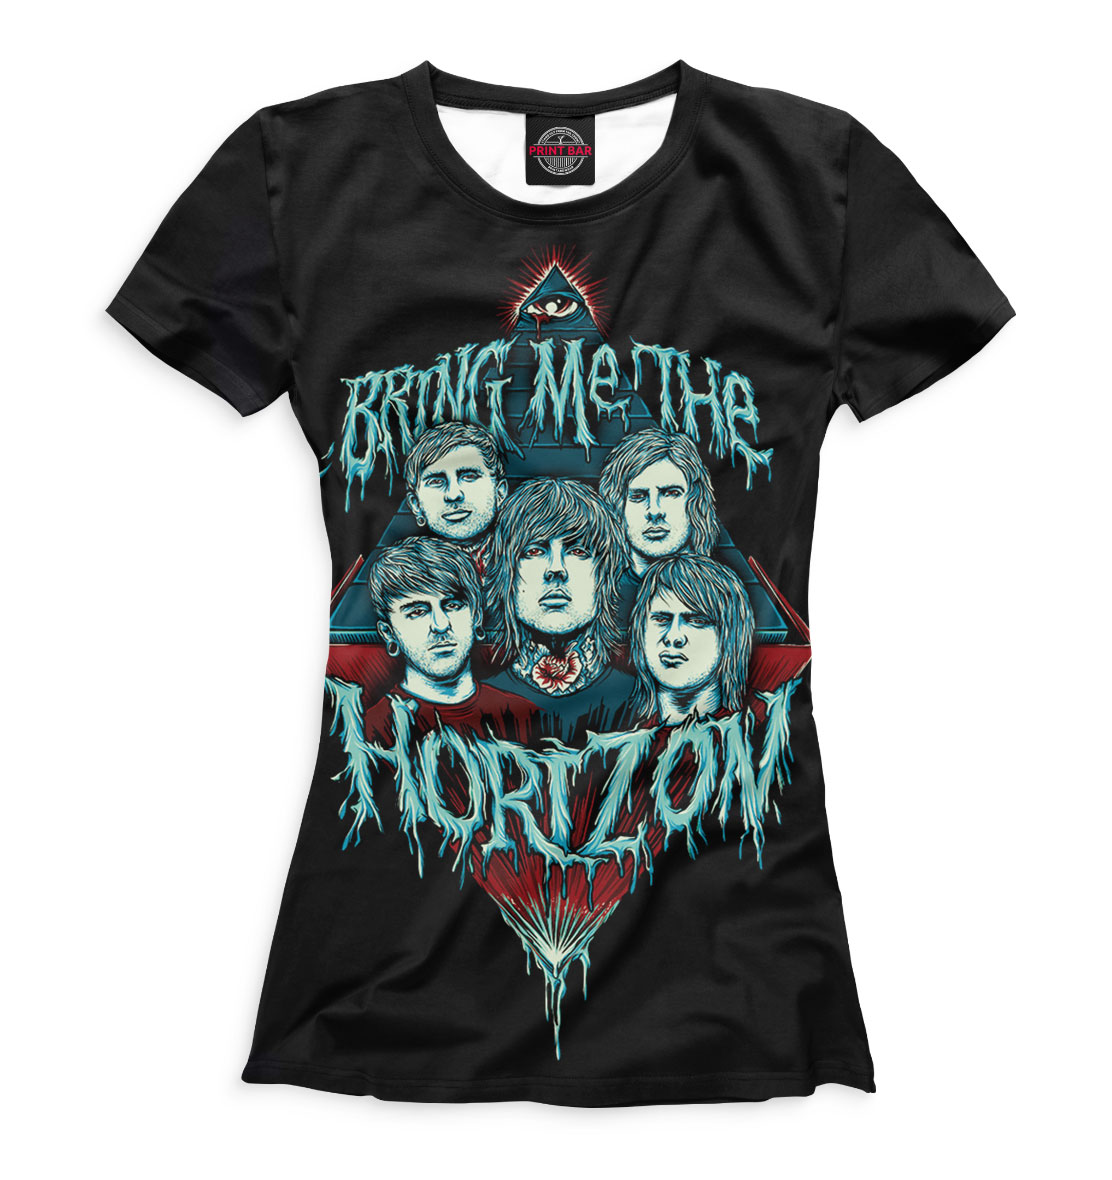 Купить Bring Me the Horizon, Printbar, Футболки, BRI-294855-fut-1